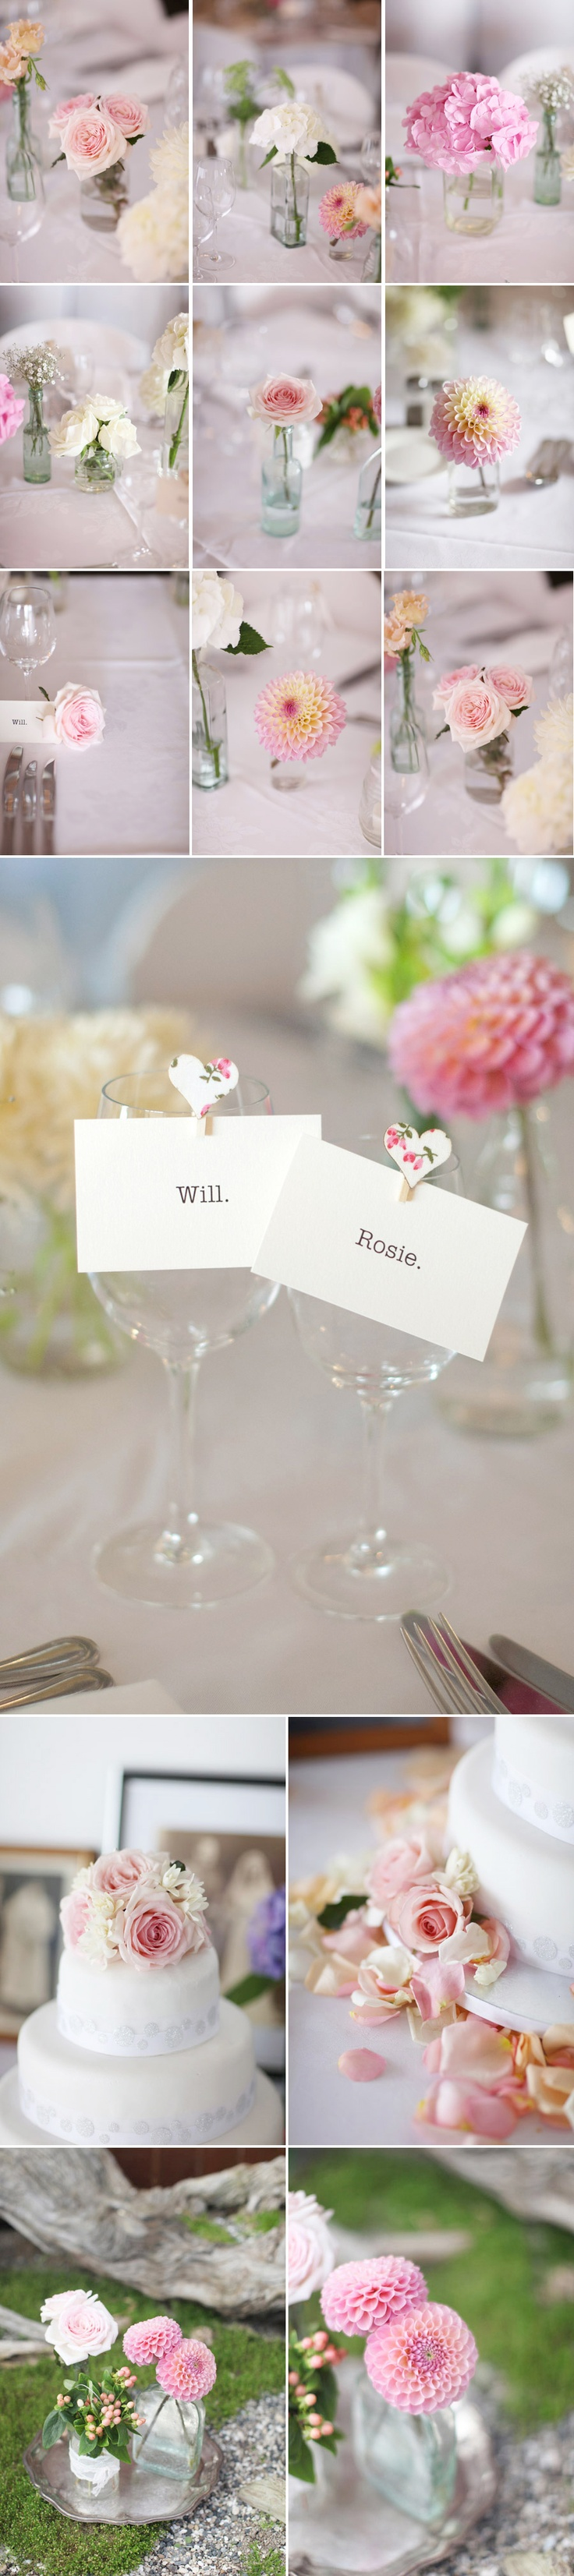 single stem centerpieces